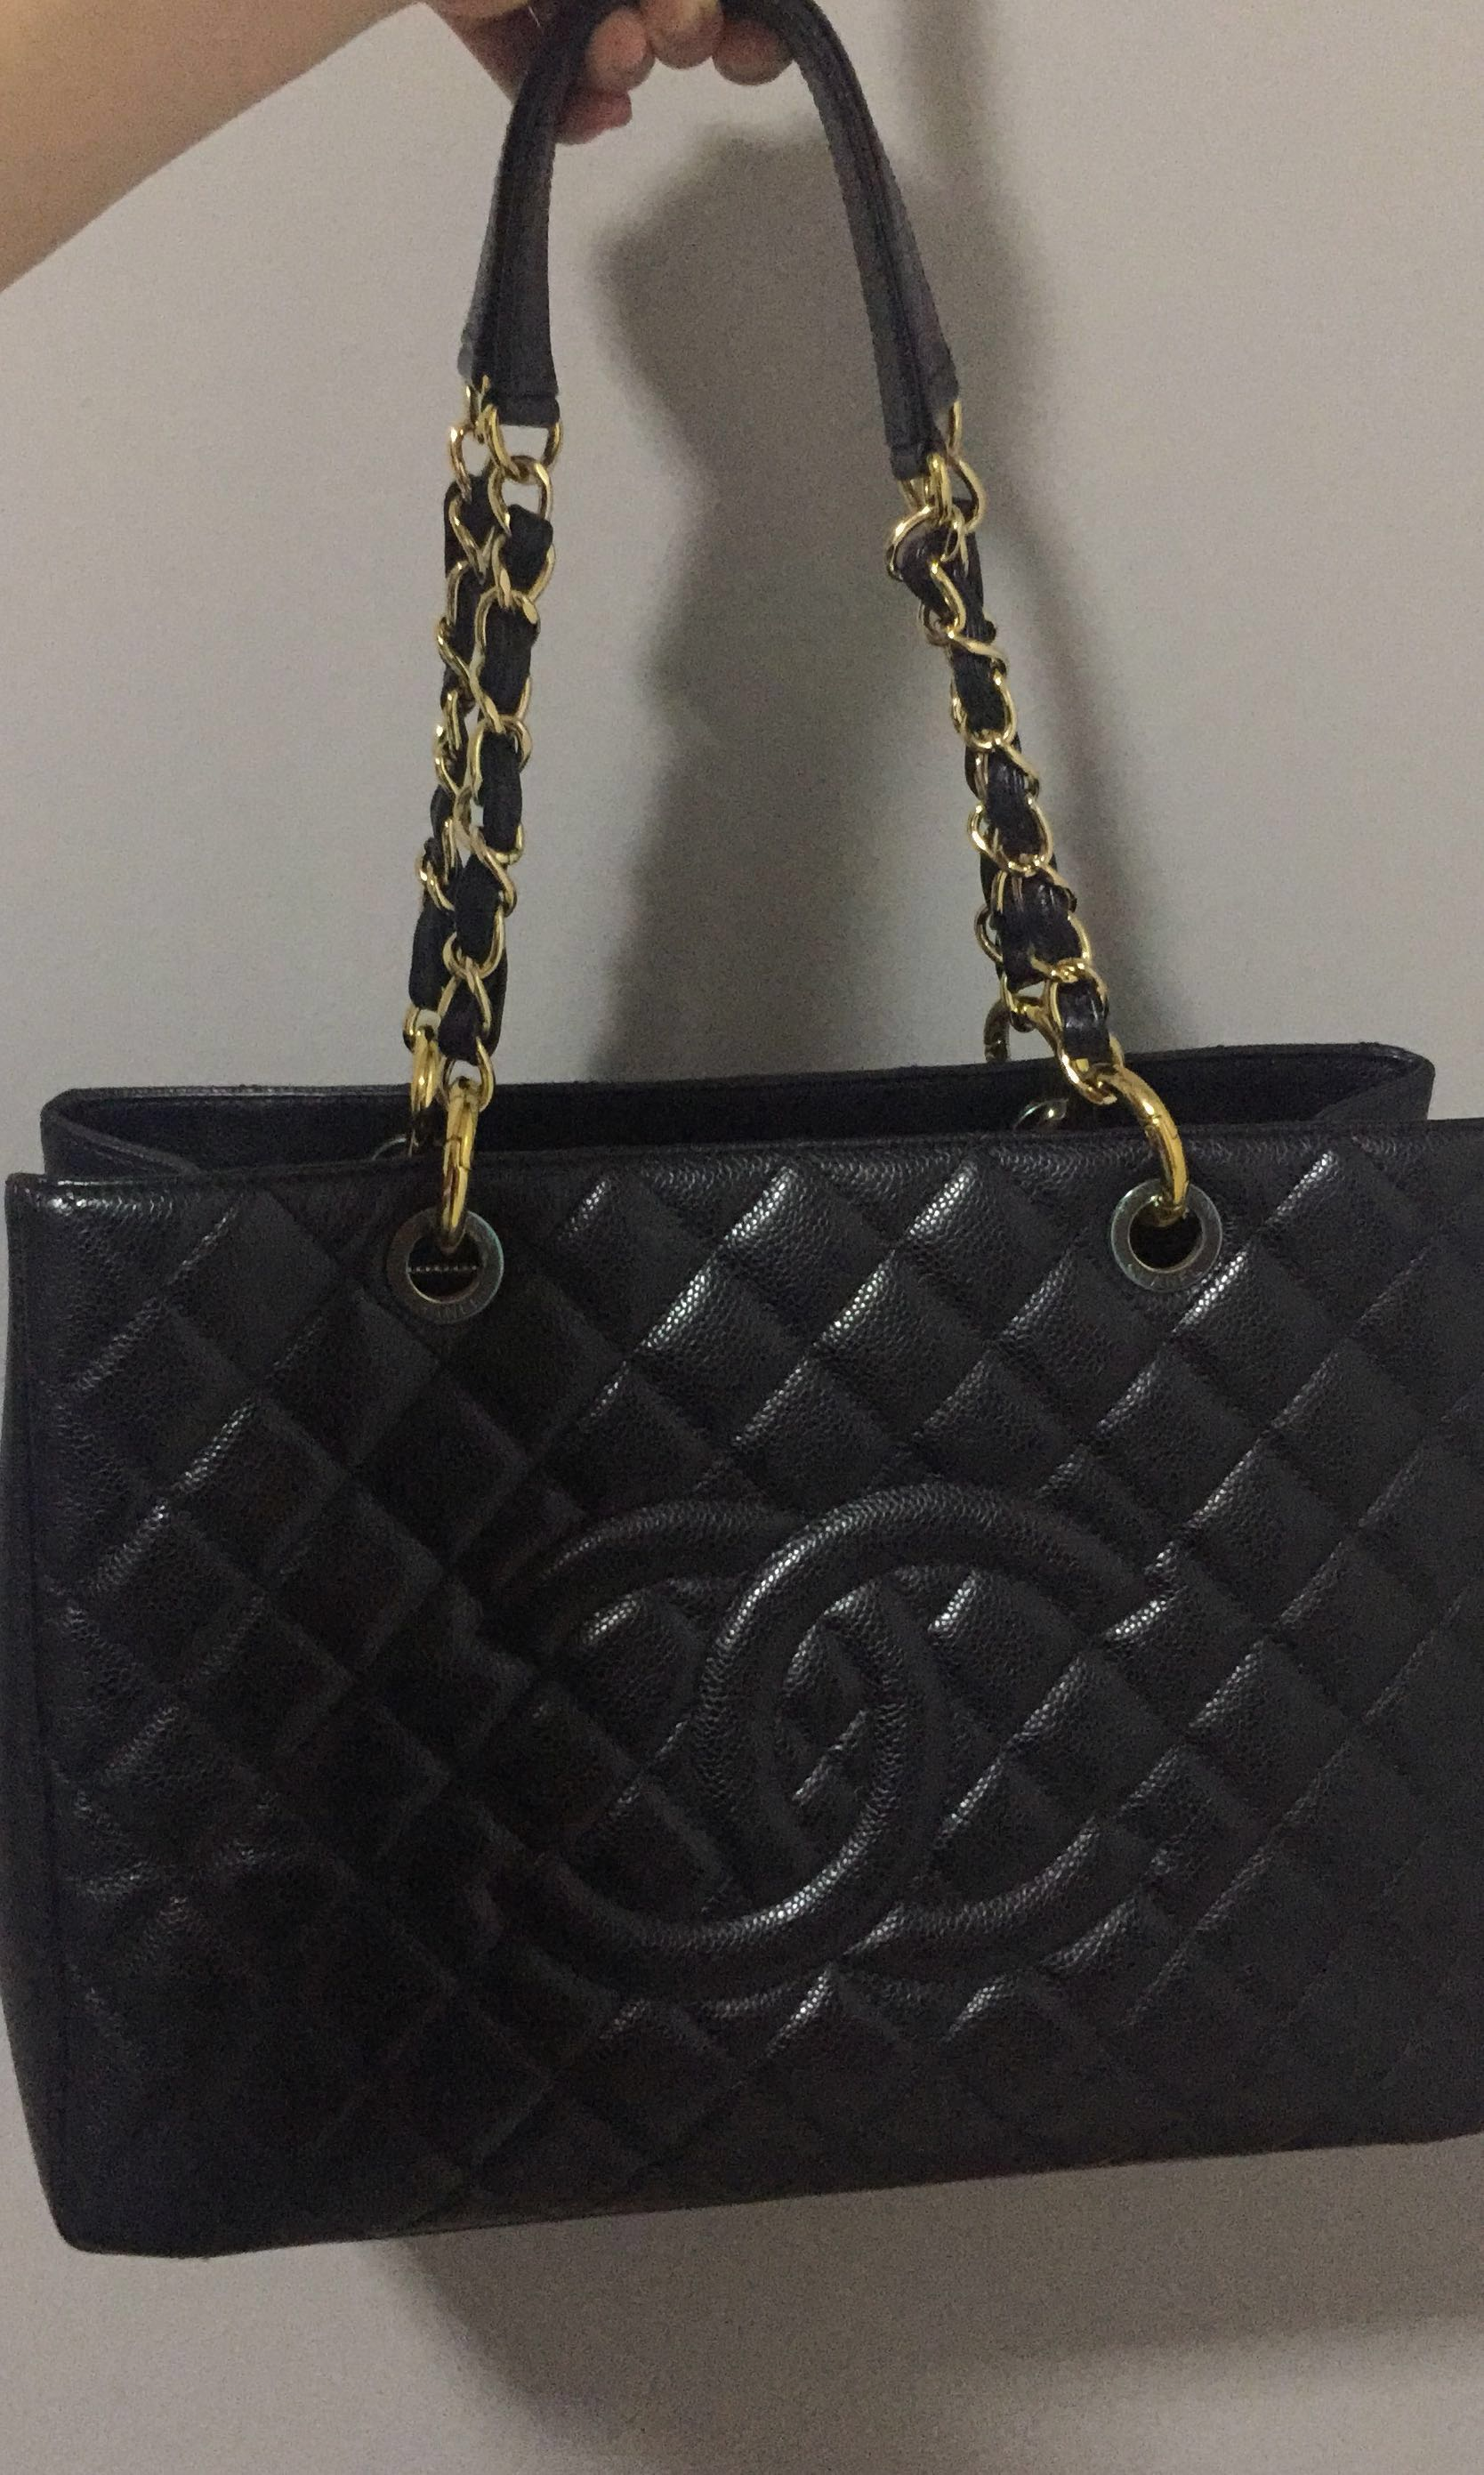 155d2daaeaeabf 100% authentic! Chanel GST in black caviar!!, Luxury, Bags & Wallets ...